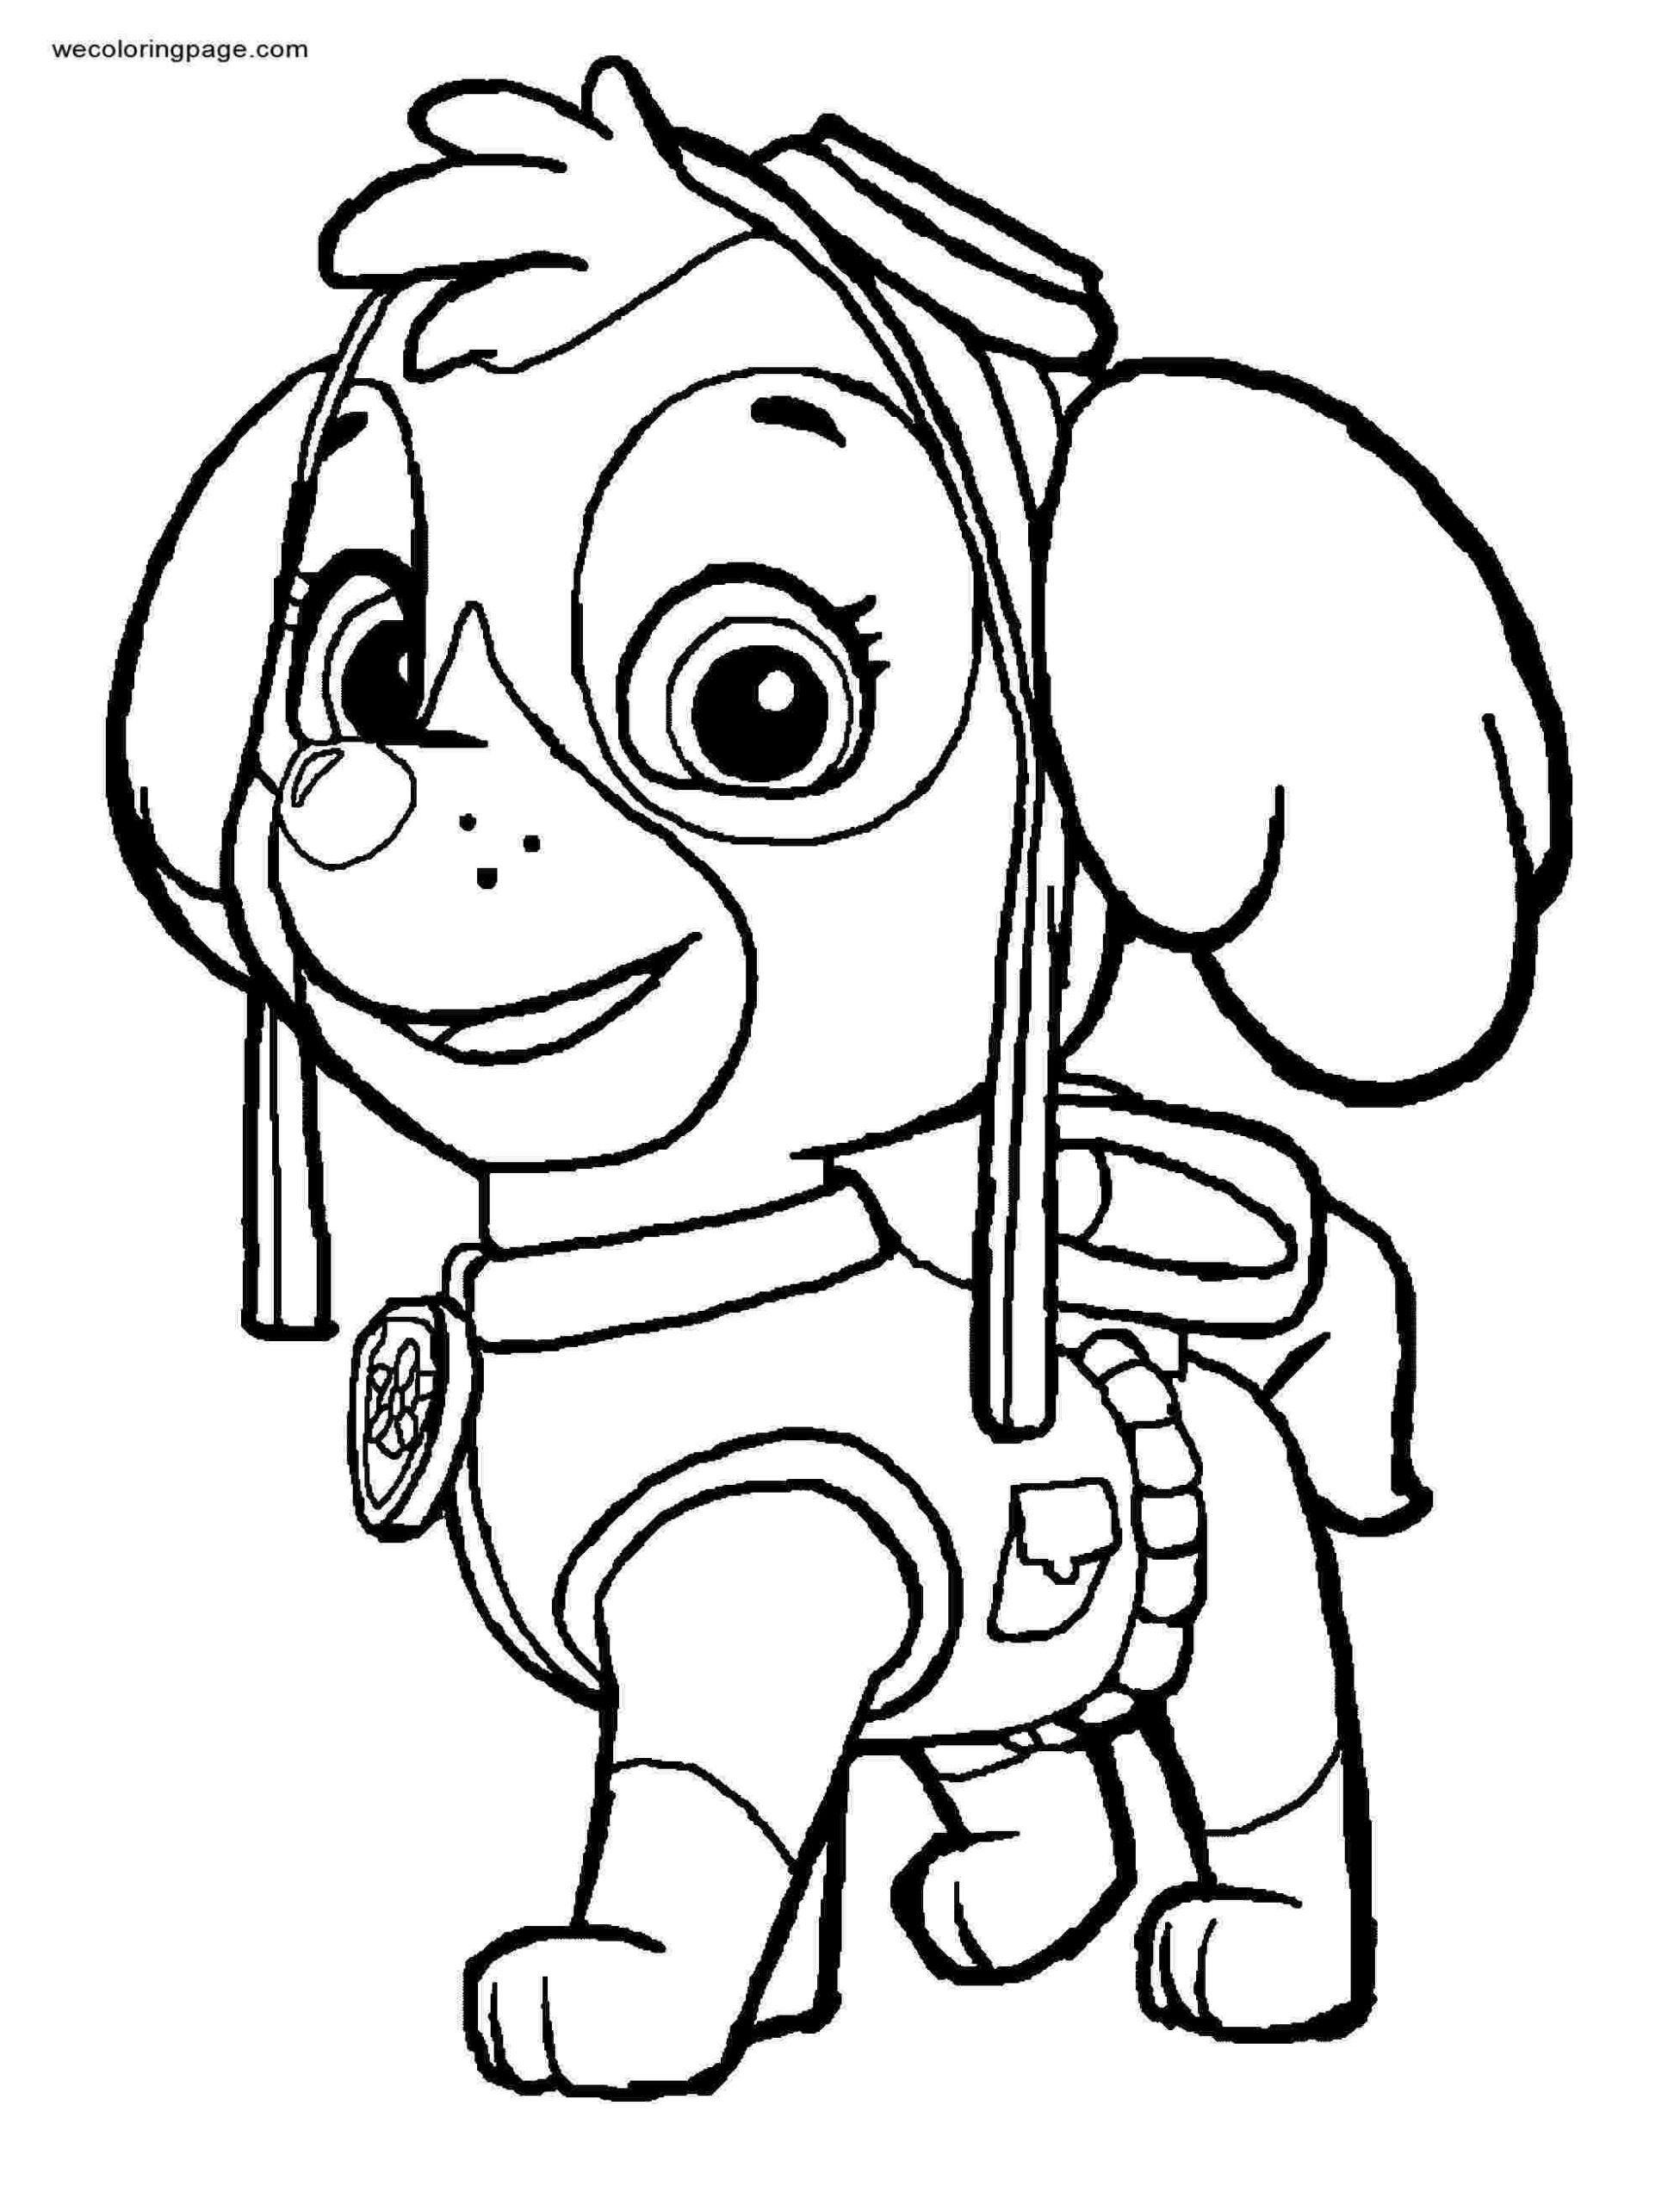 Skye Paw Patrol Coloring Page Youngandtae Com Paw Patrol Coloring Pages Paw Patrol Coloring Puppy Coloring Pages